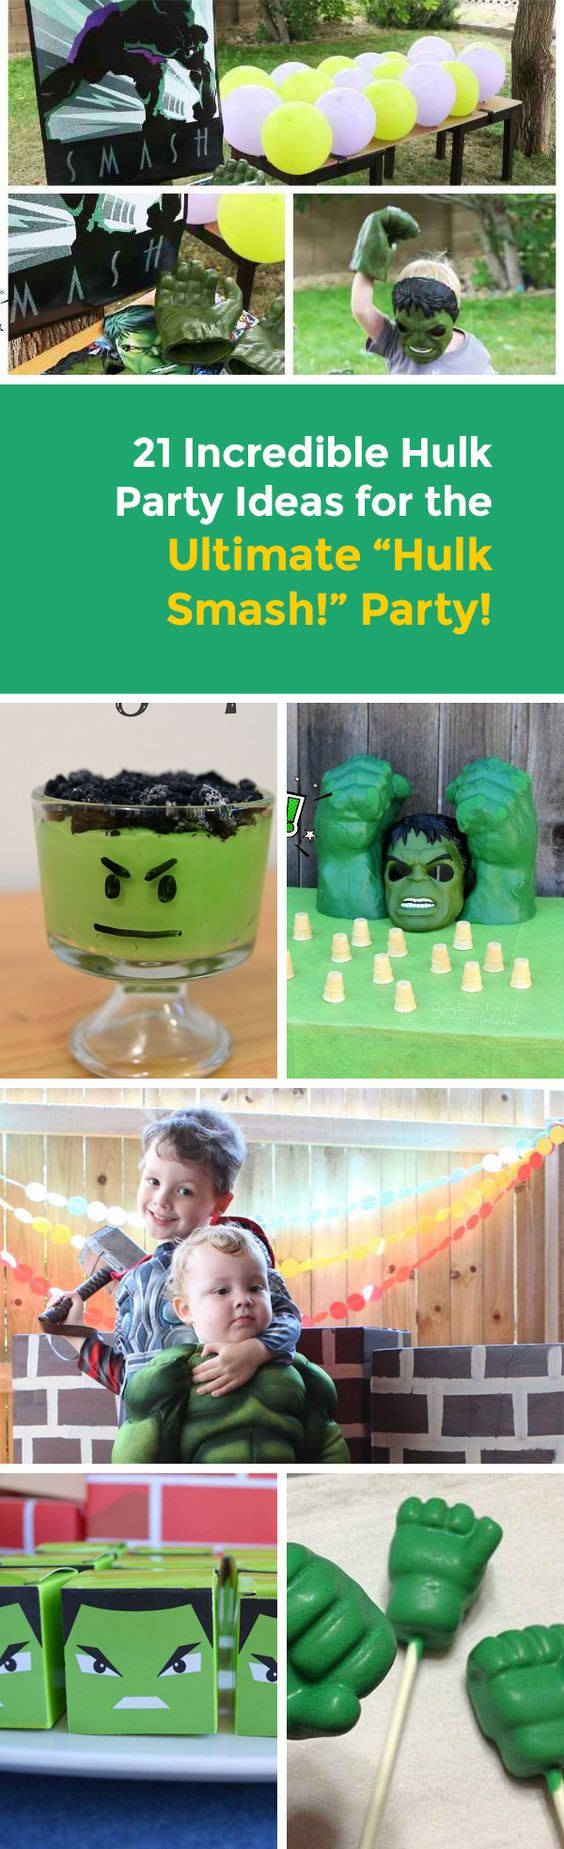 Want to know a smashing party inspired by one of the most favourite Marvel Comics characters? Check out these Incredible Hulk party ideas…